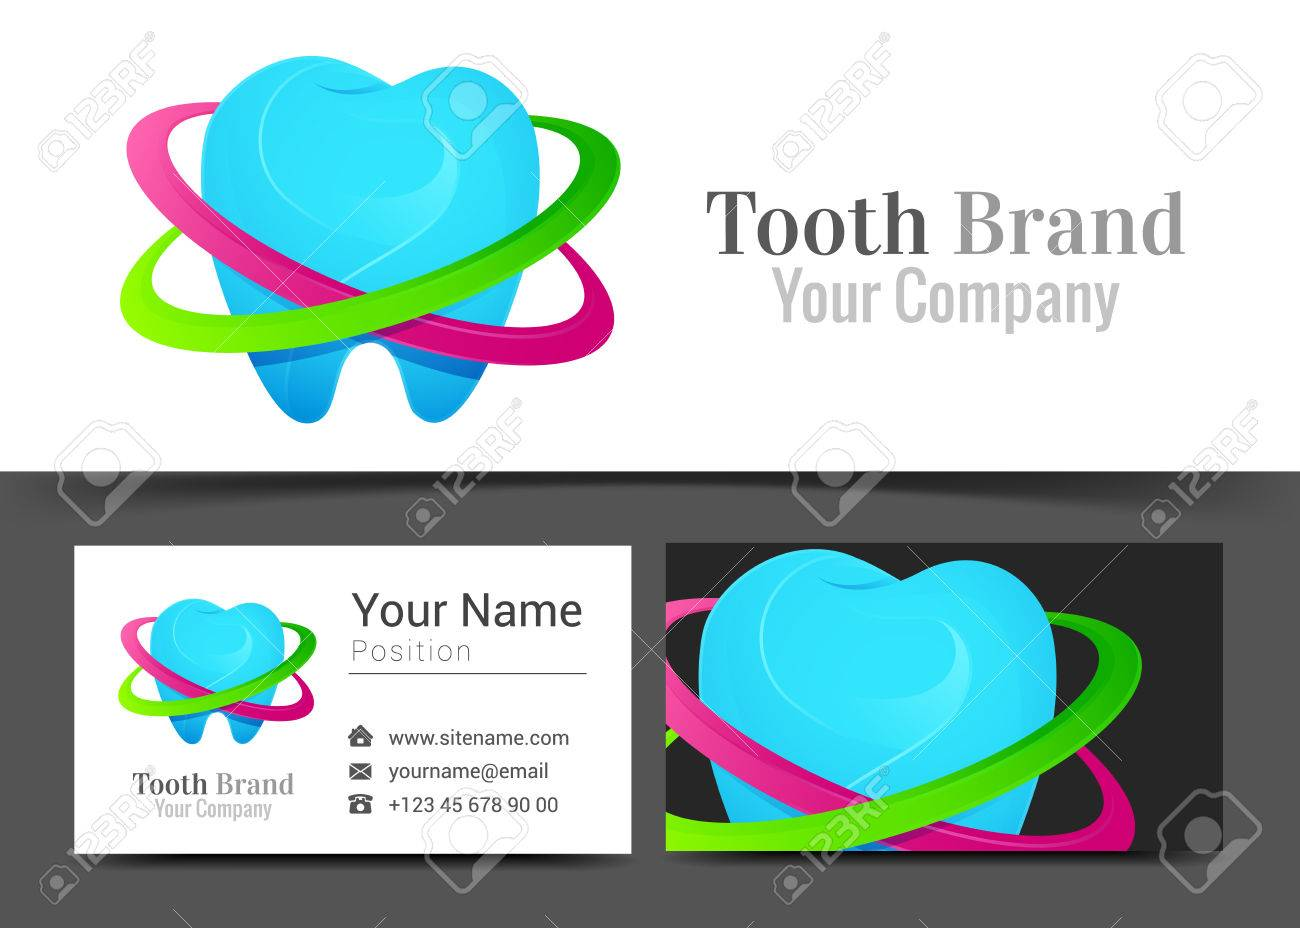 Business card sign choice image free business cards dental corporate logo and business card sign template creative dental corporate logo and business card sign magicingreecefo Images